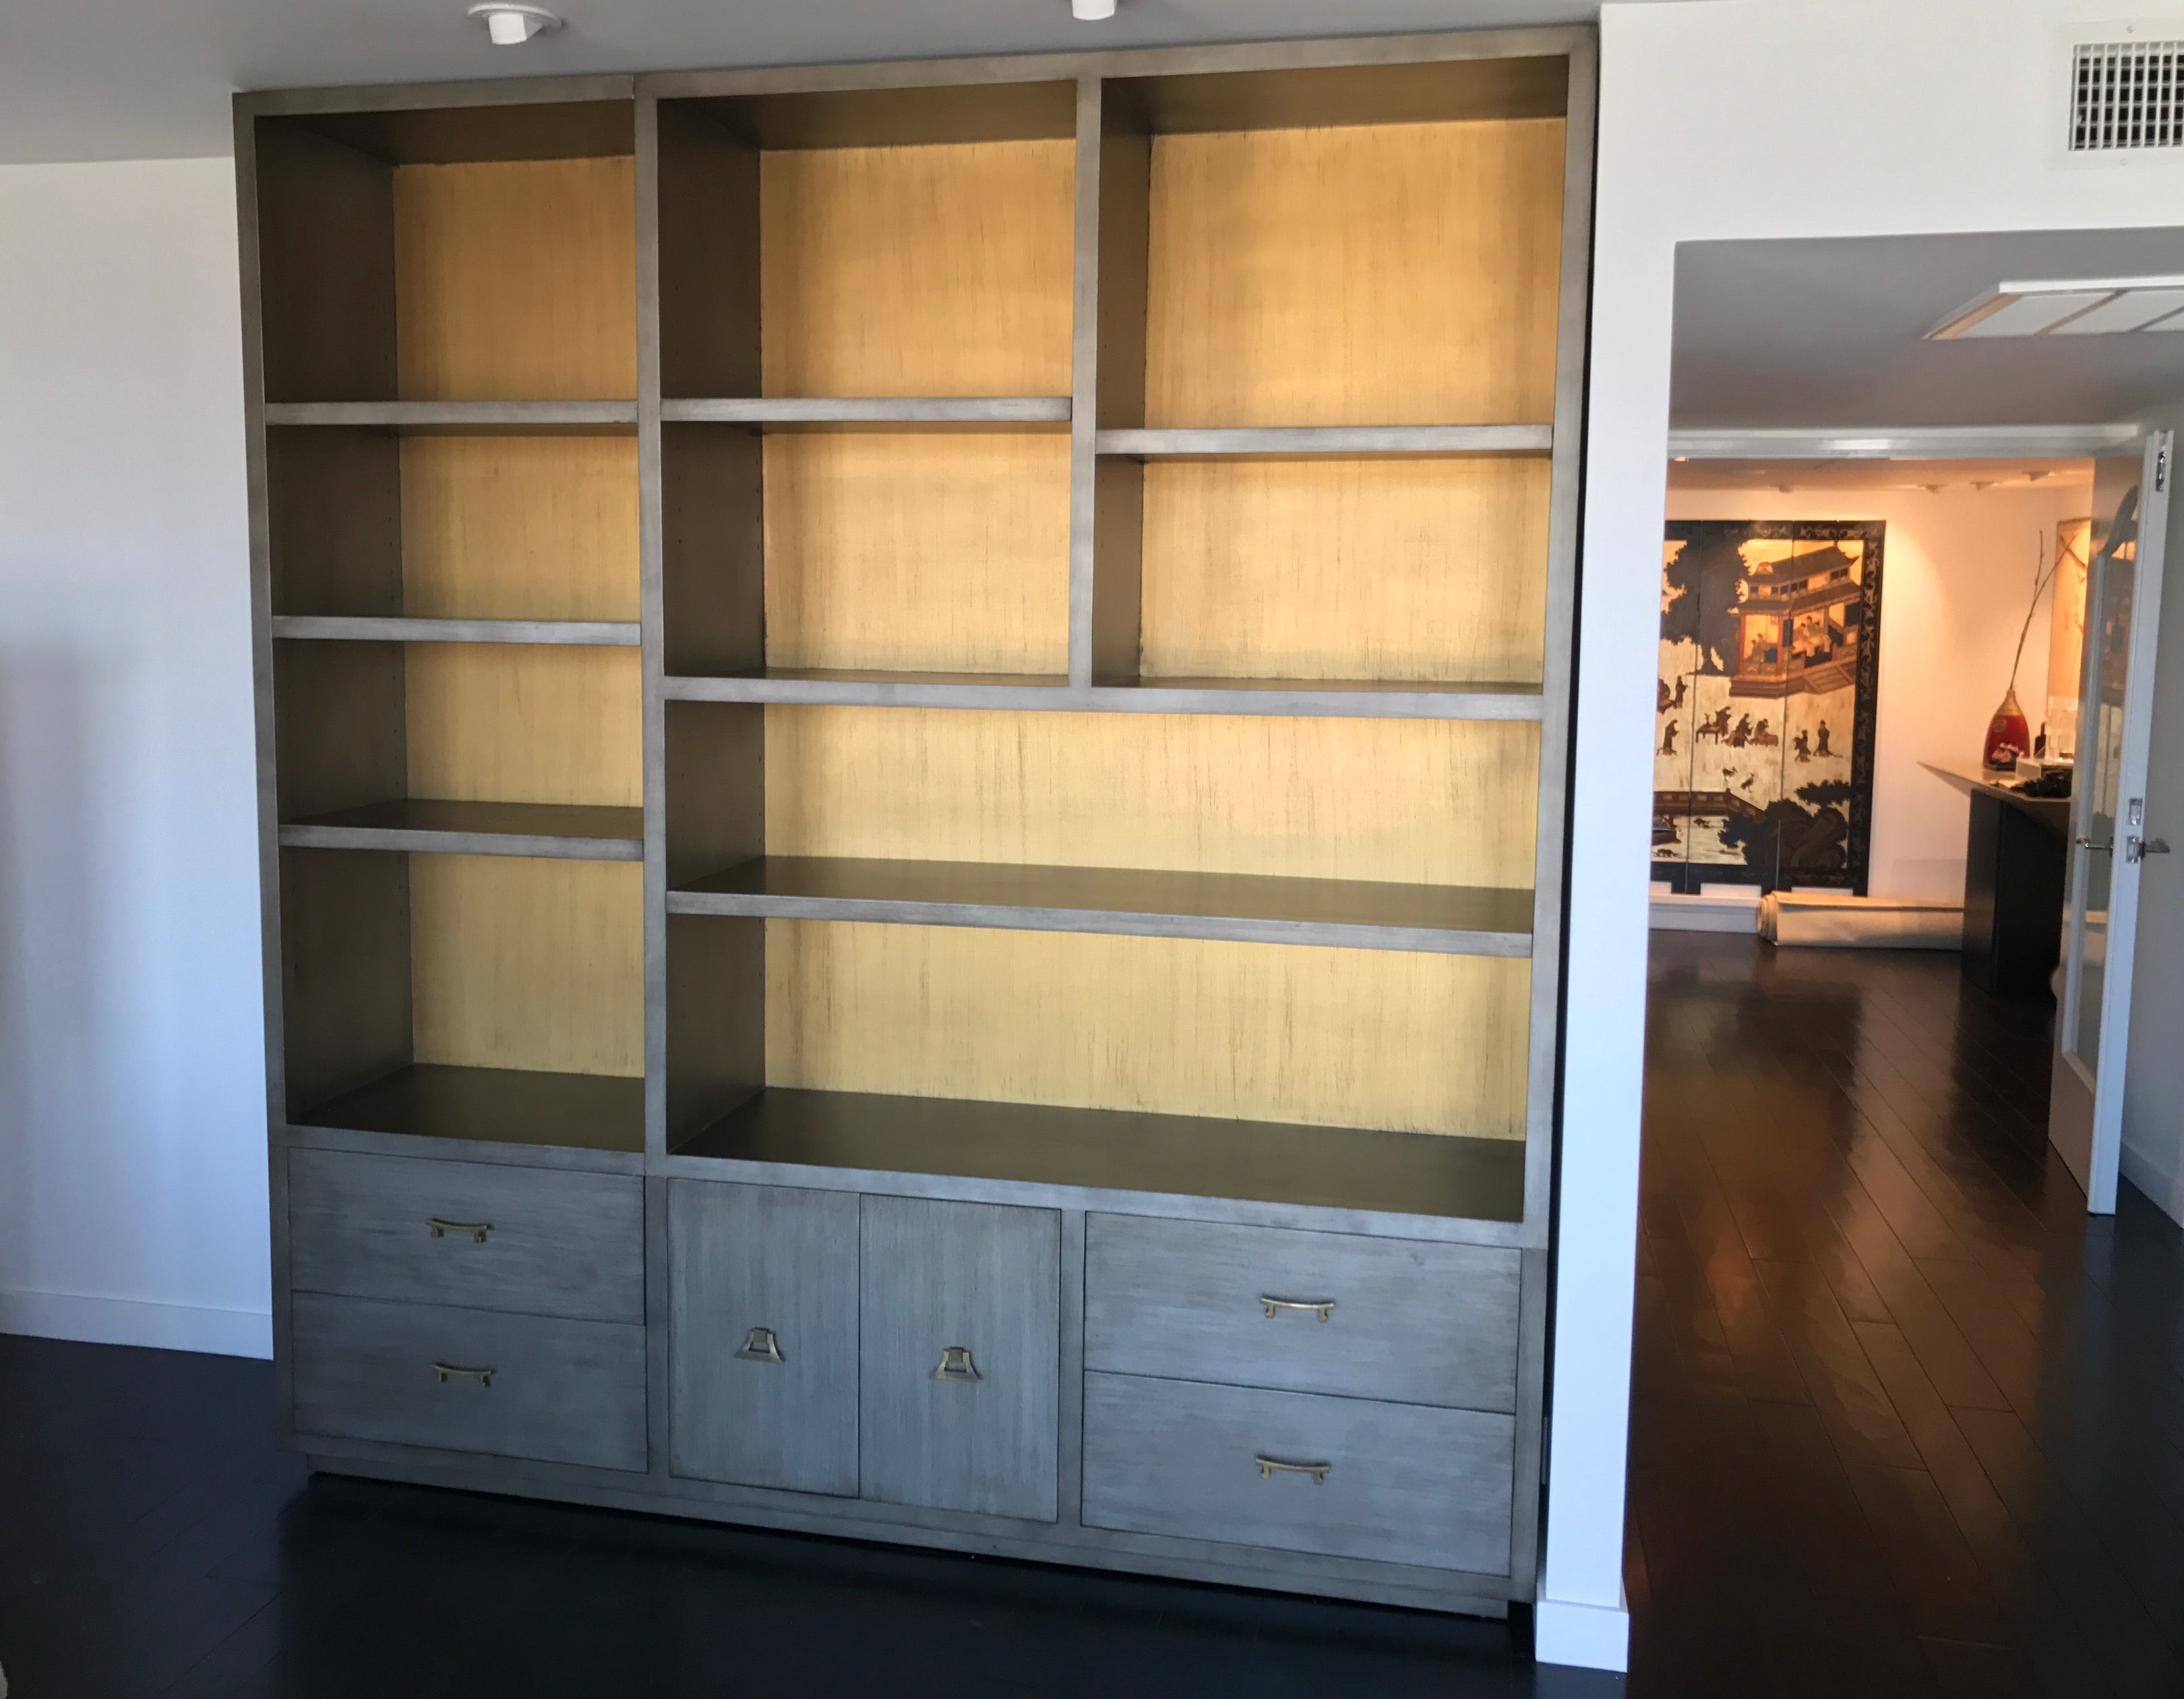 everywhere now custom weve bookshelves community bressi l in ranch cabinets california ca c designed southern bookcase carlbad bookcases